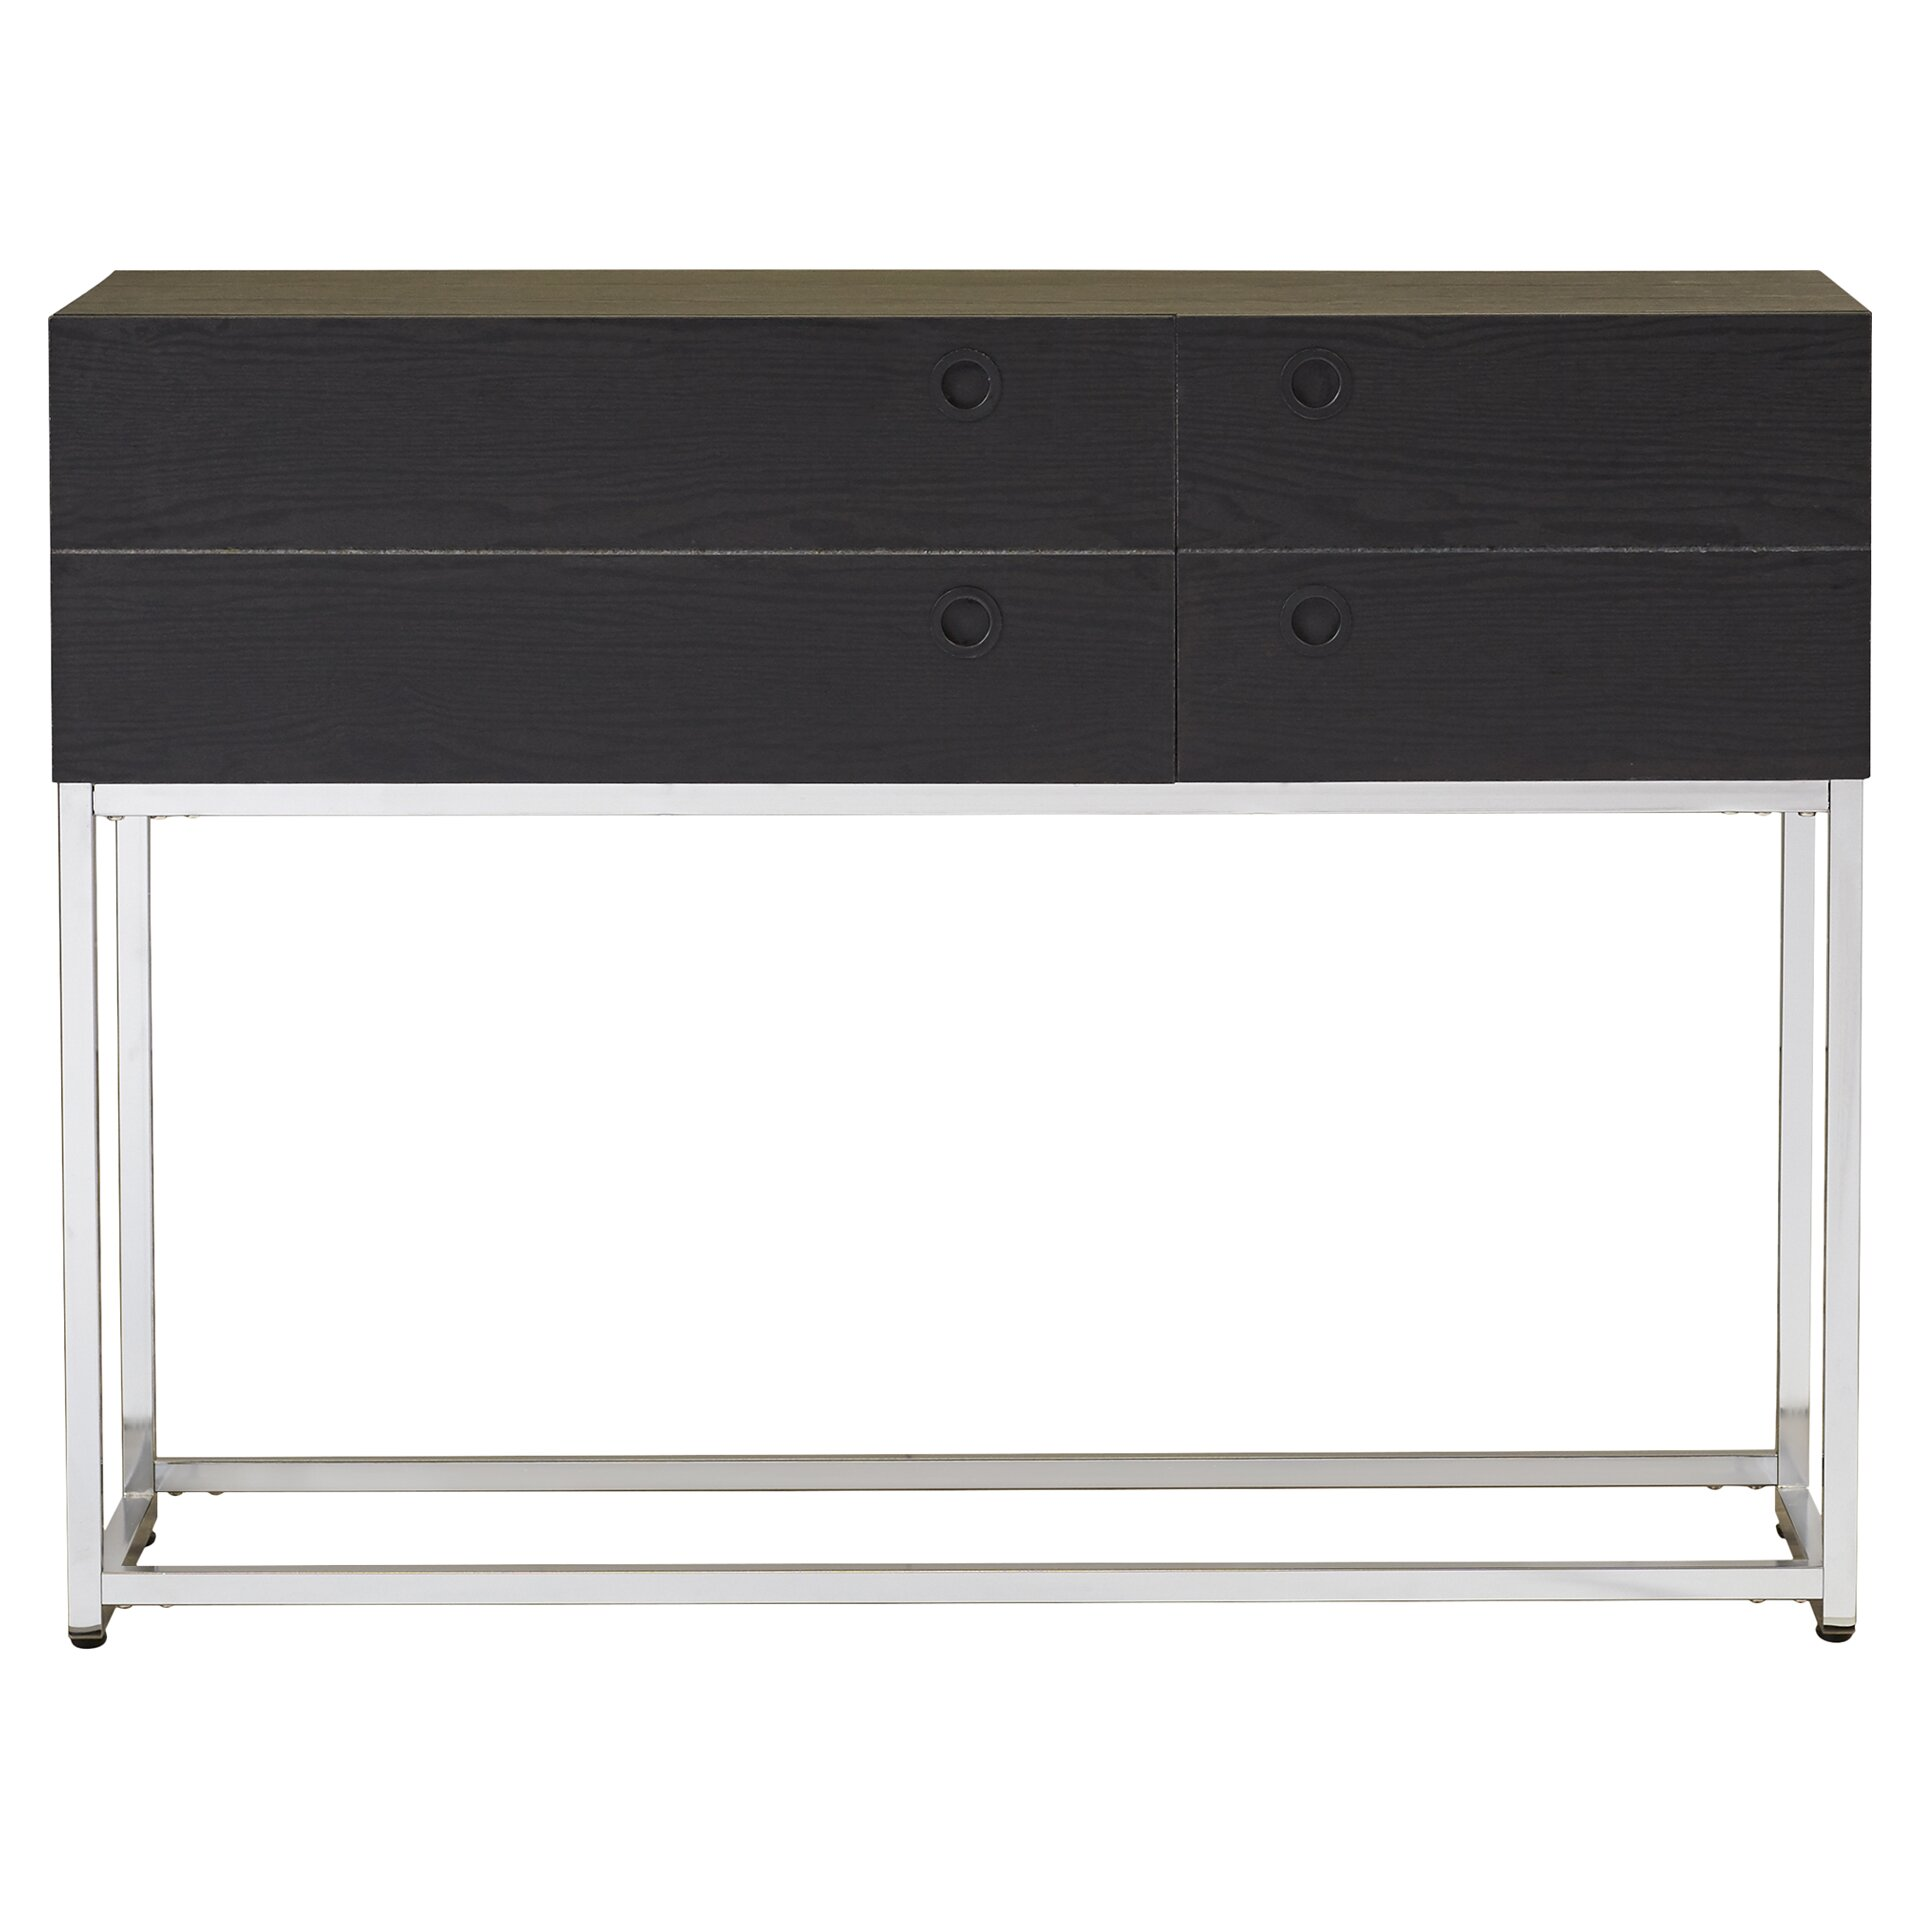 Zipcode Design Ana Maria Console Table amp Reviews Wayfair : Zipcode25E2258425A2 Design Ana Maria Console Table from www.wayfair.com size 1920 x 1920 jpeg 240kB